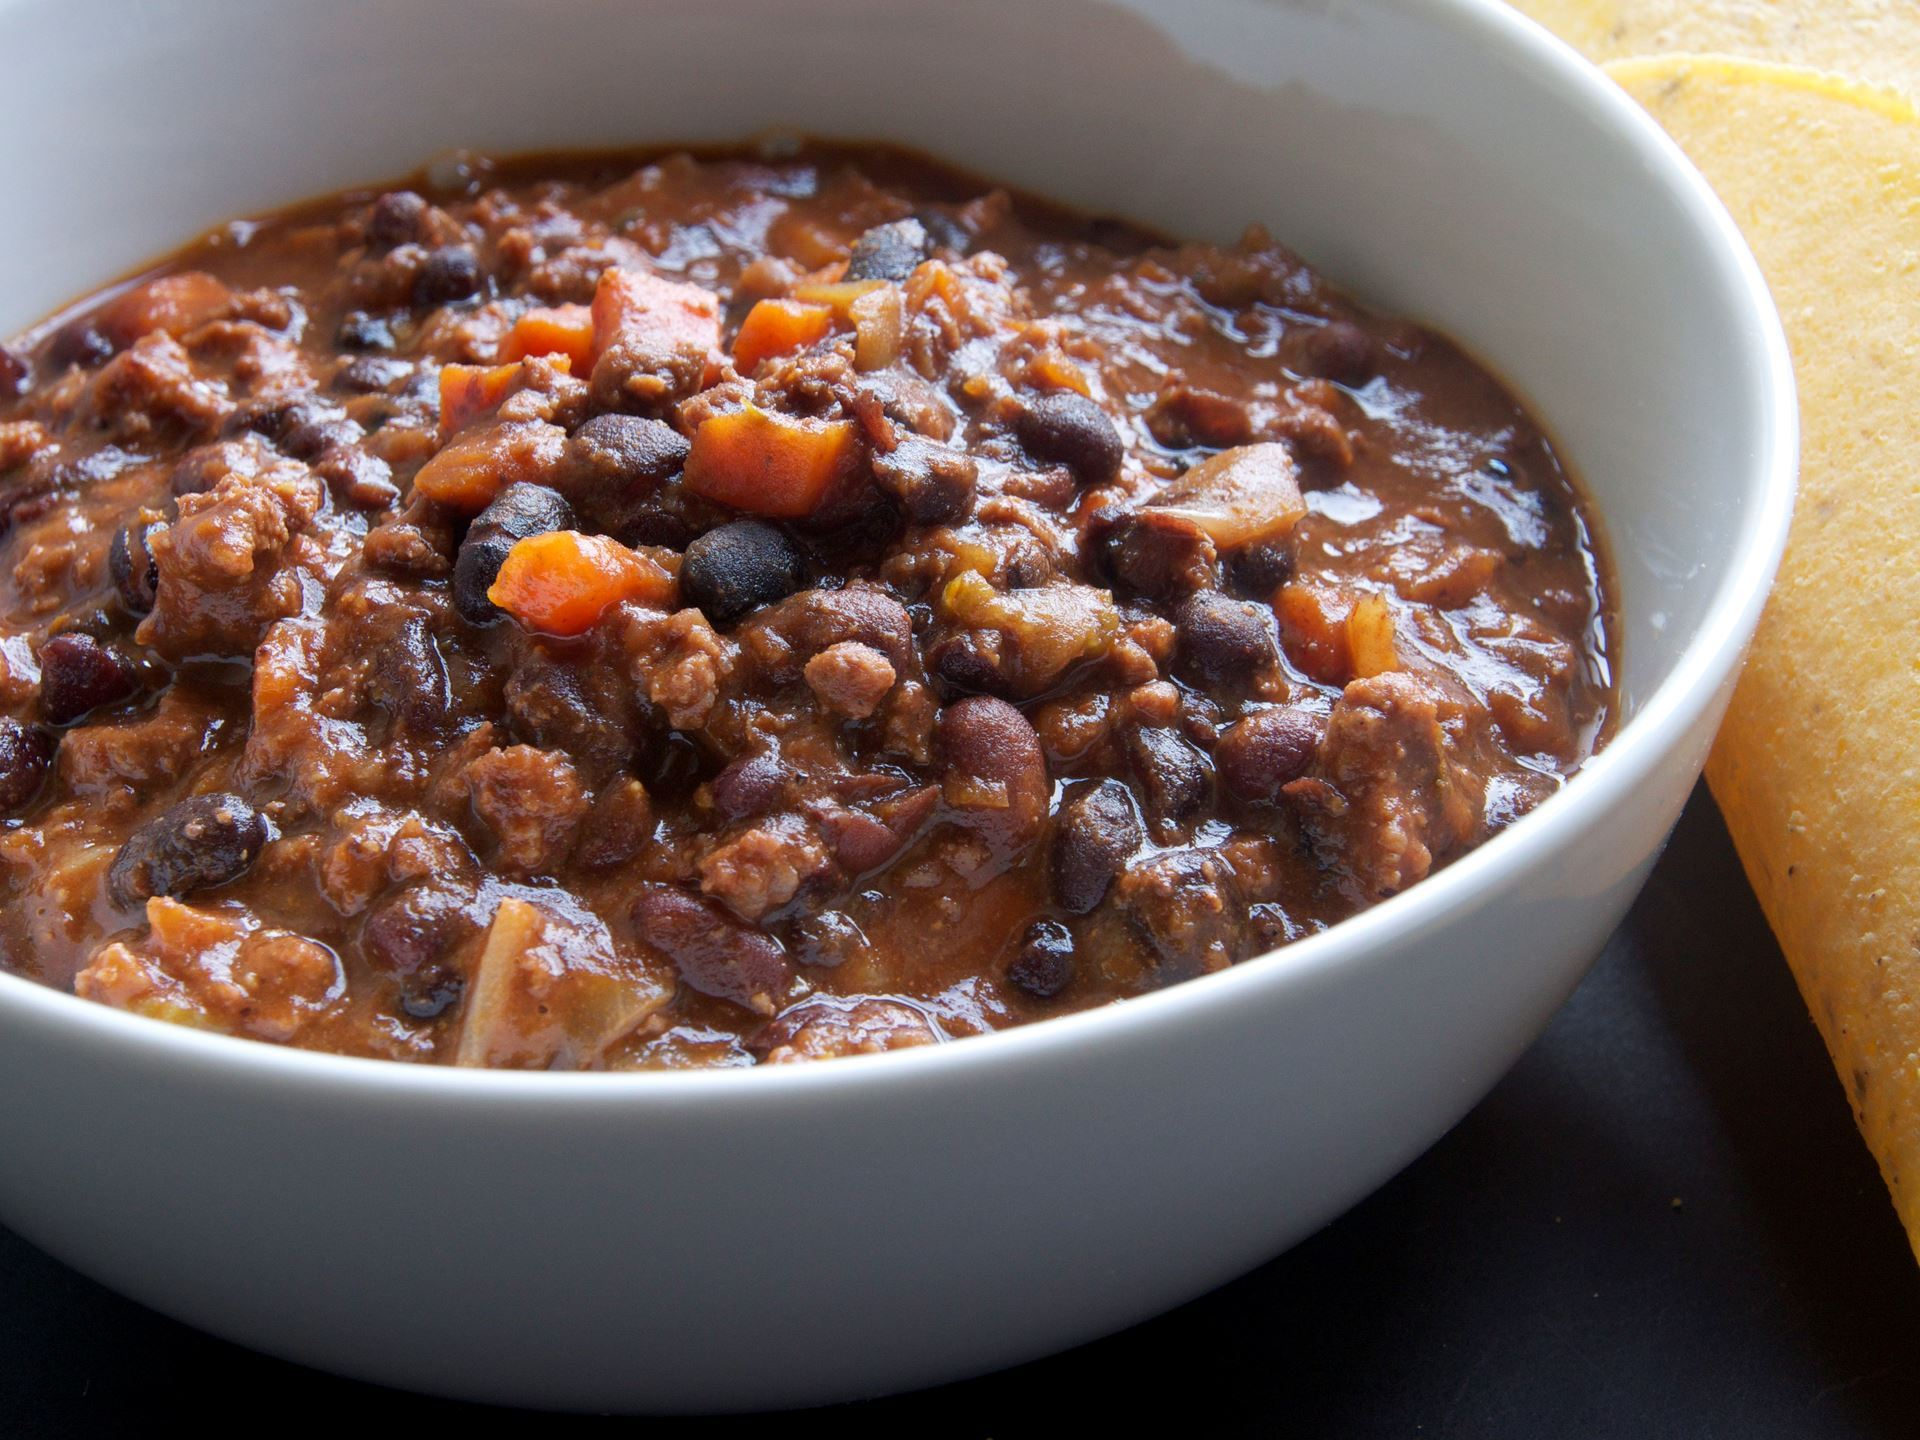 Picture of Frozen -- Black Bean Chili with Ground Beef 22 oz